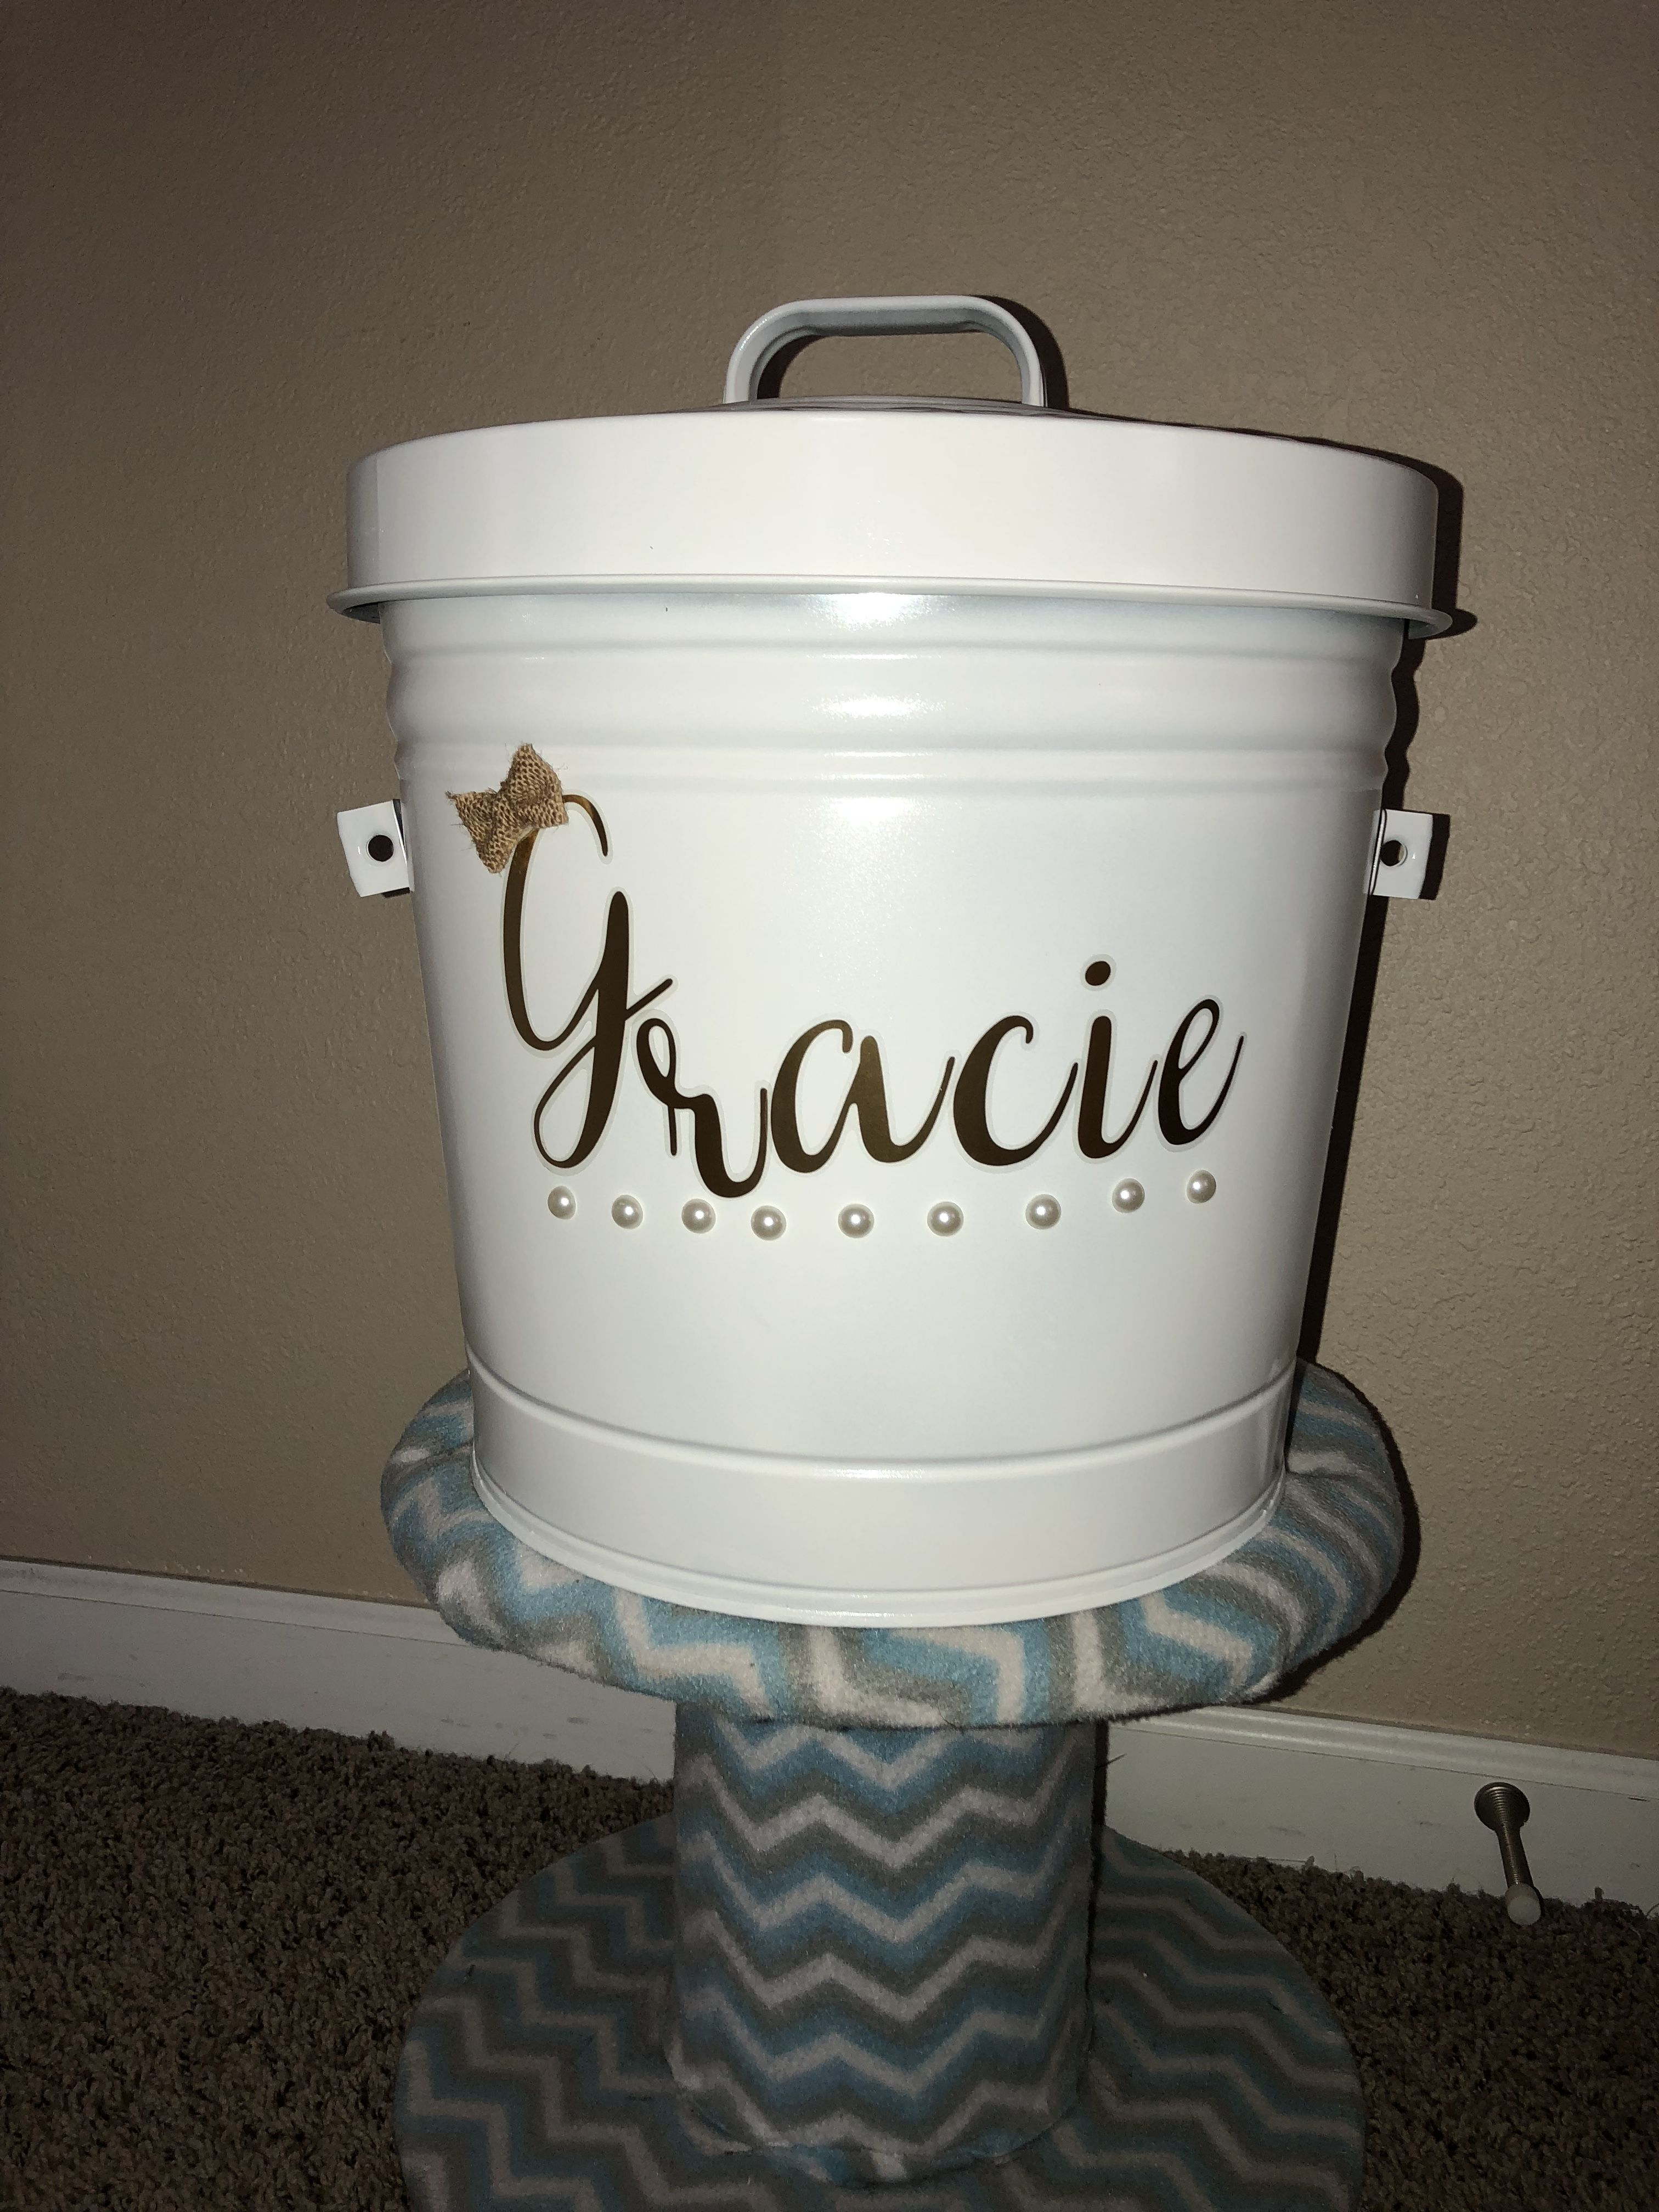 DIY Dog food container! Super easy and fun to make! Metal